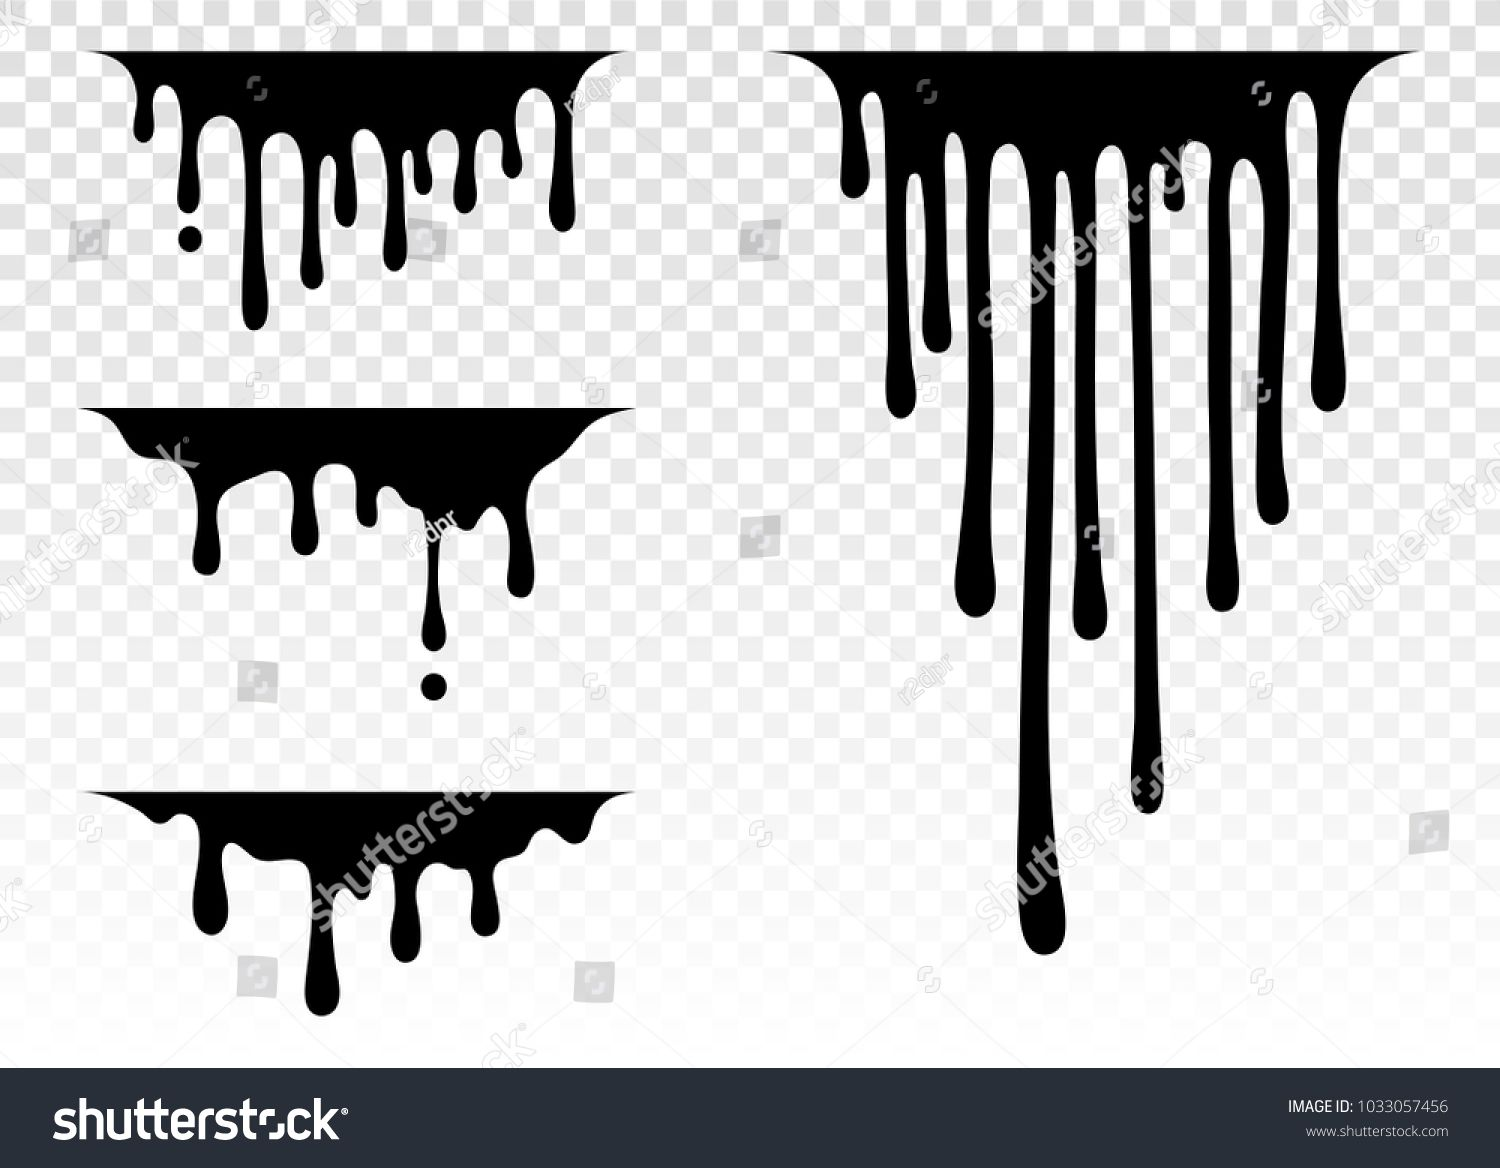 Current Paint Stains Current Drops Current Inks Paint Dripping Dripping Liquid Paint Flows Vect Dripping Paint Art Black Colour Background Drip Painting